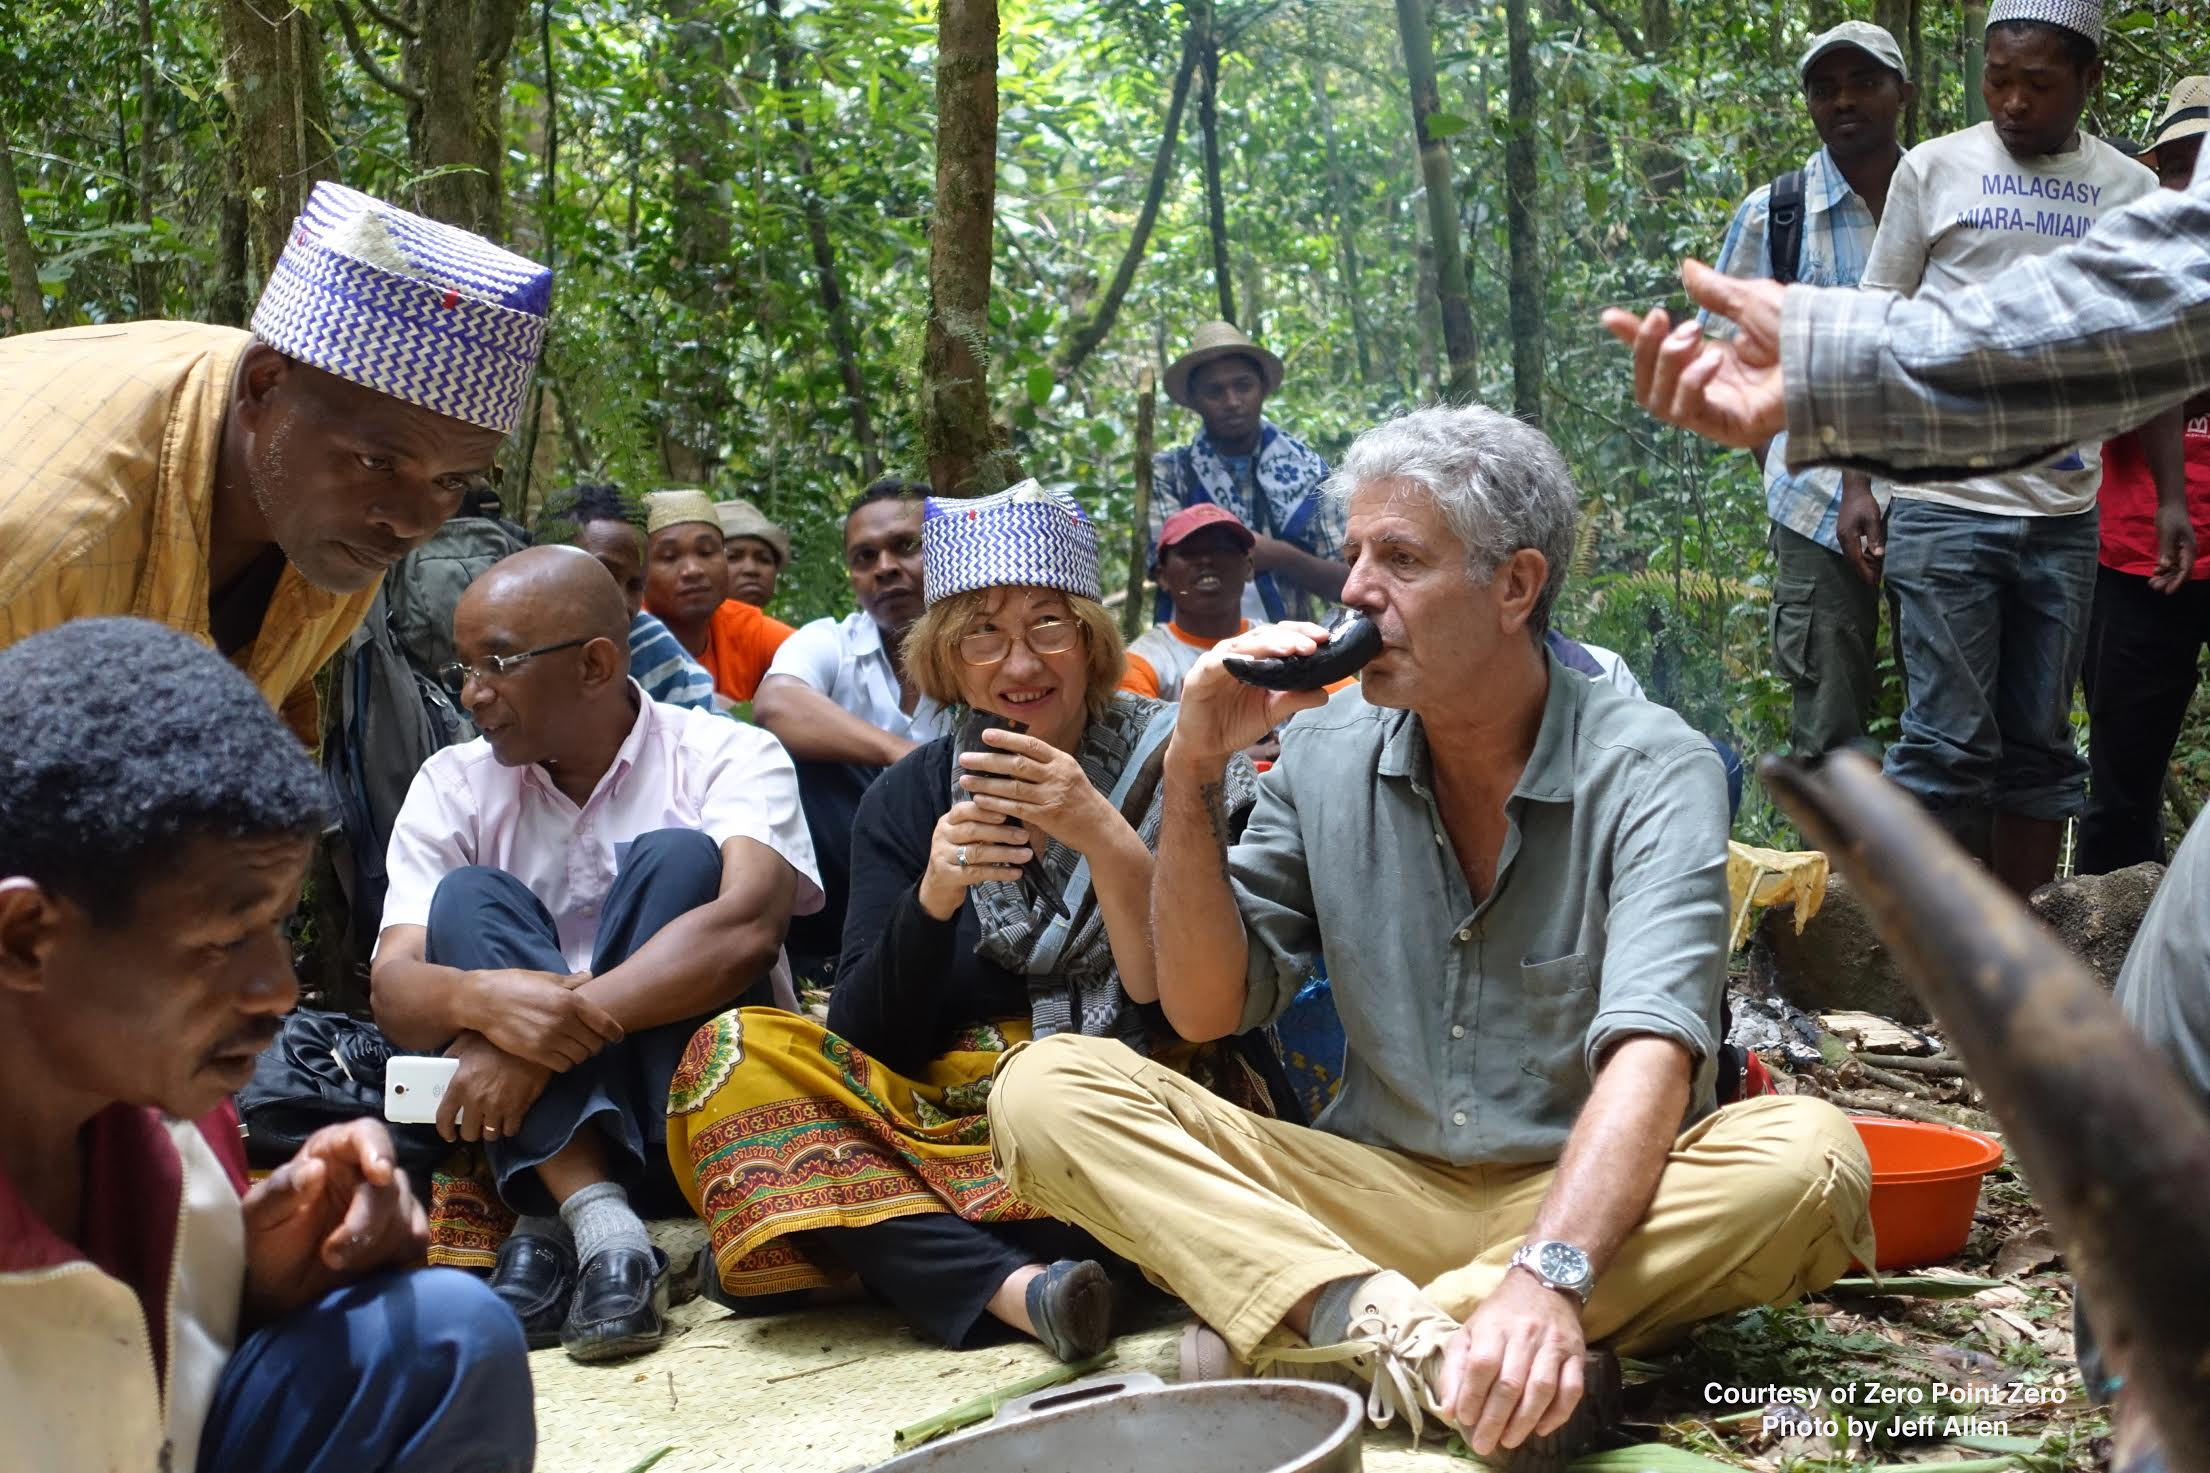 Anthony Bourdain Tour Review